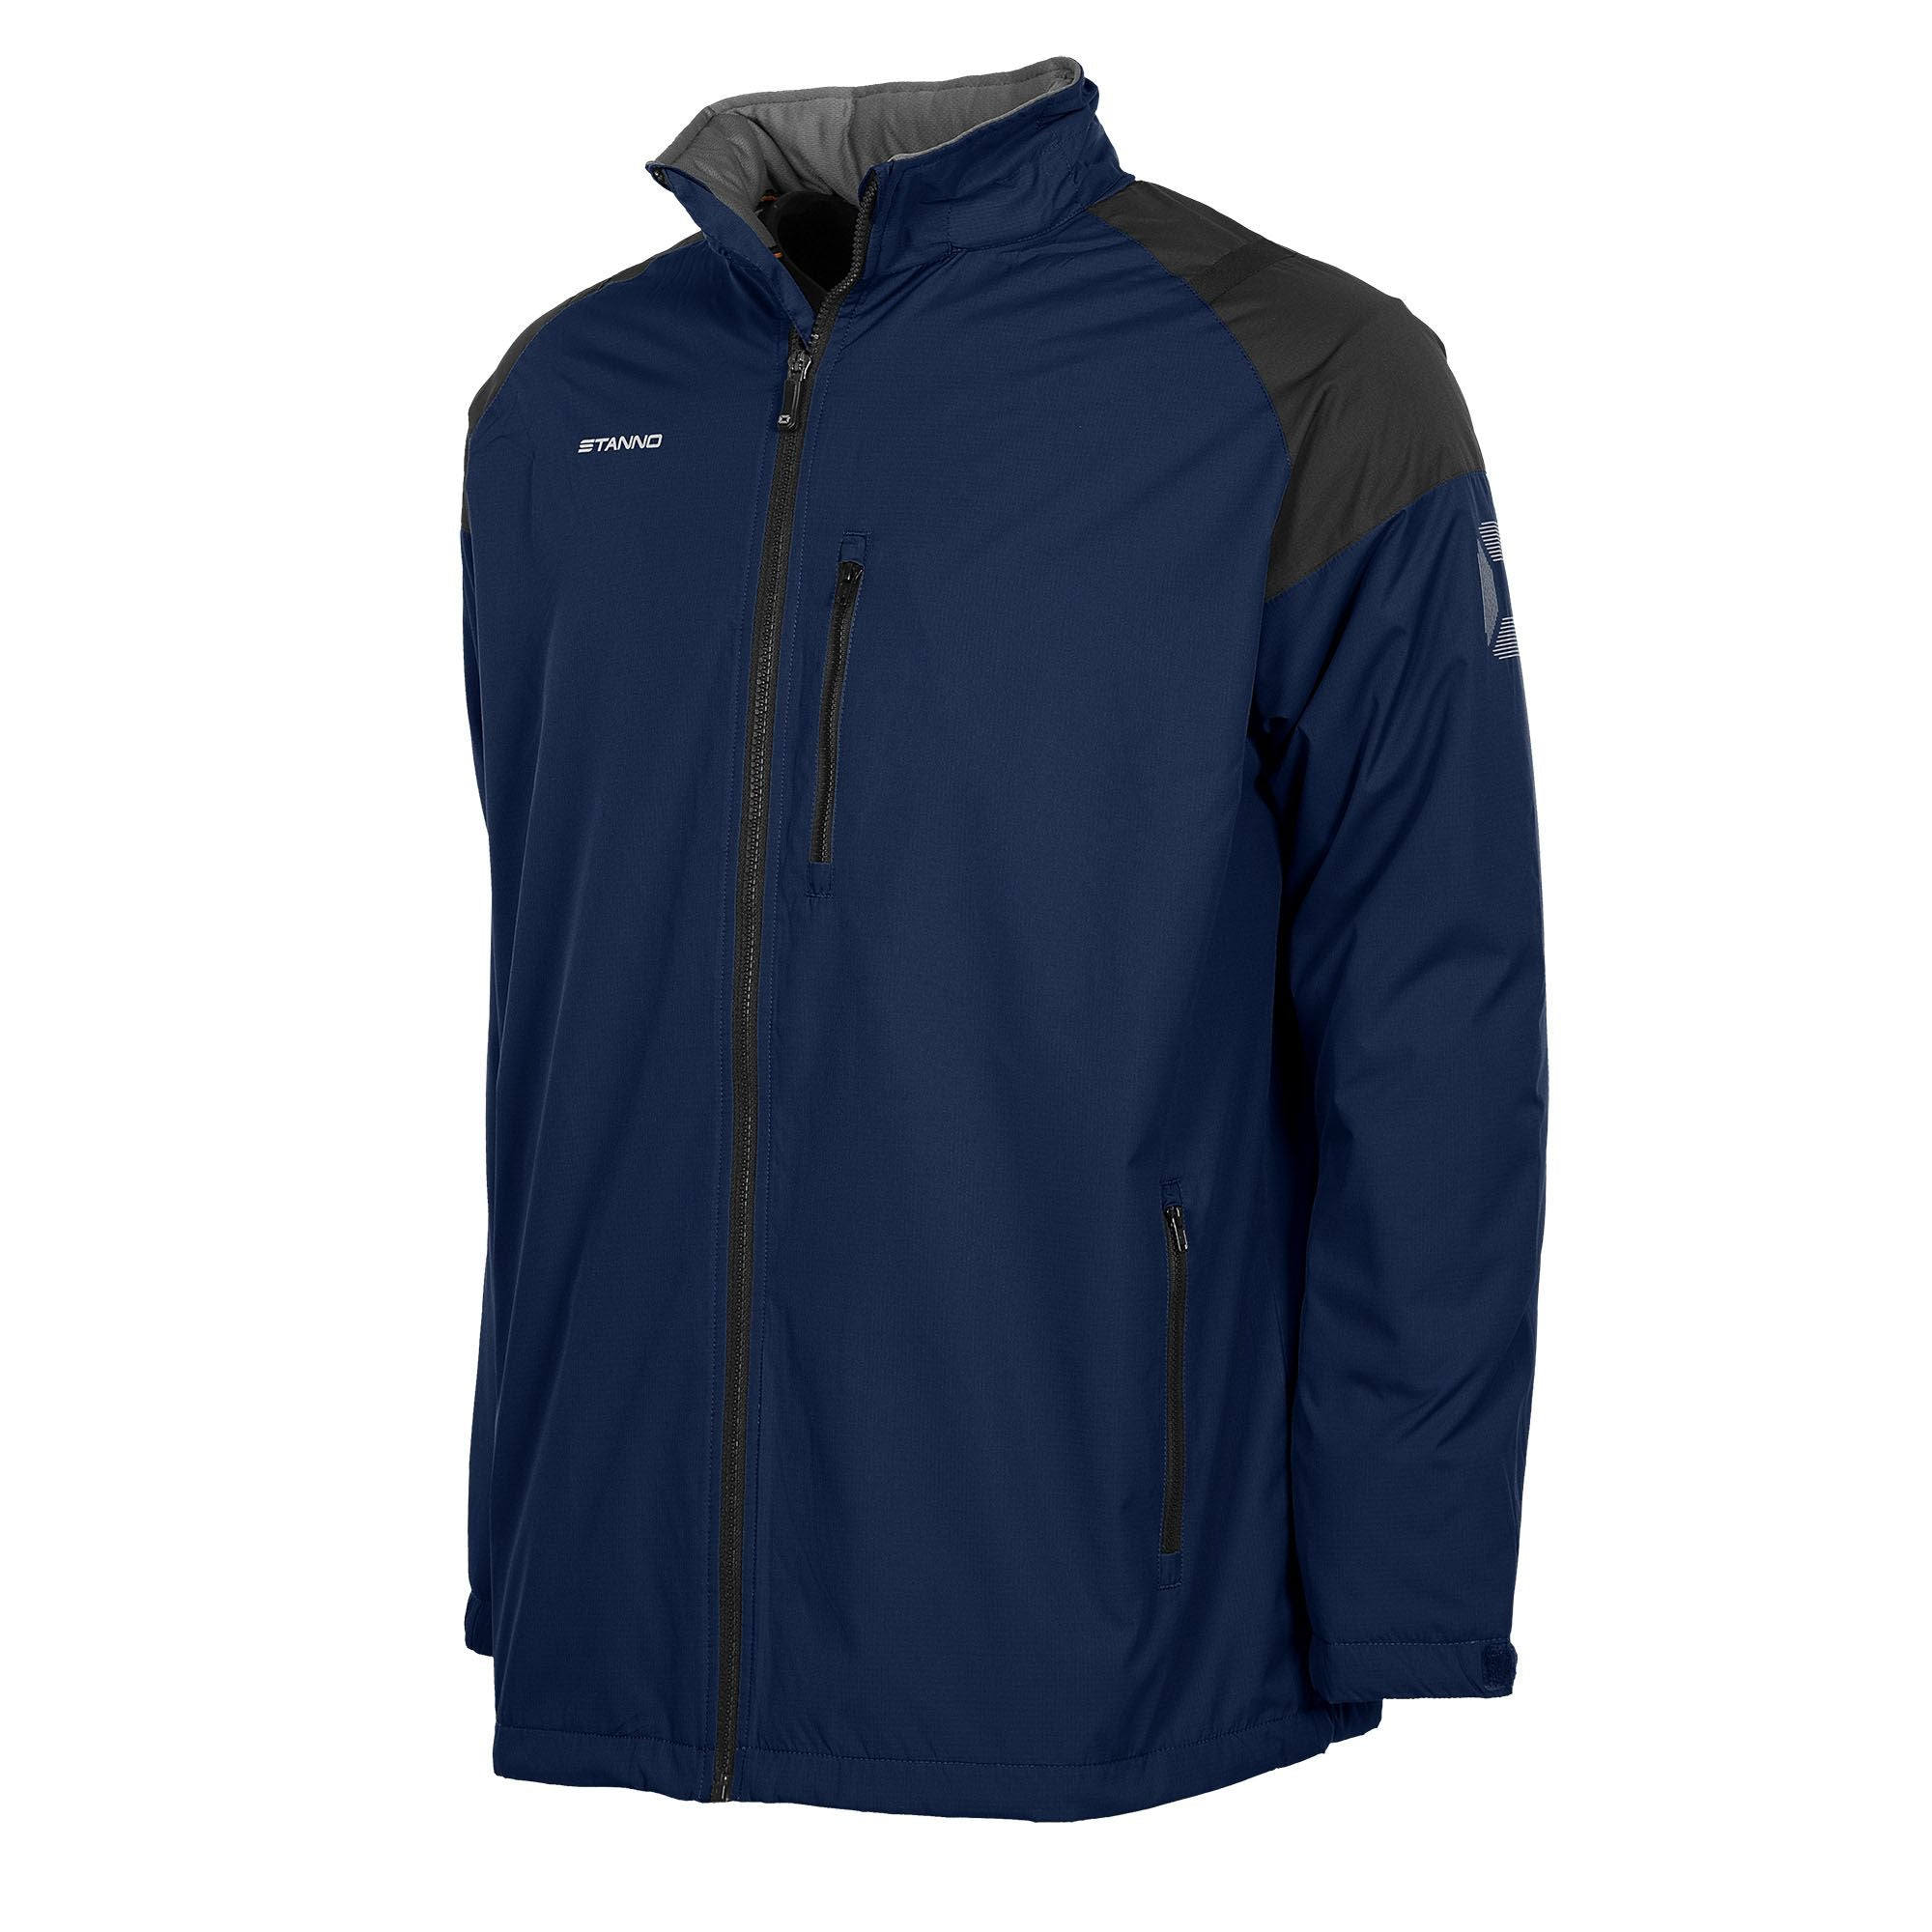 Front of navy Stanno Centro All season jacket, front zip on left chest. Black contrast shoulders